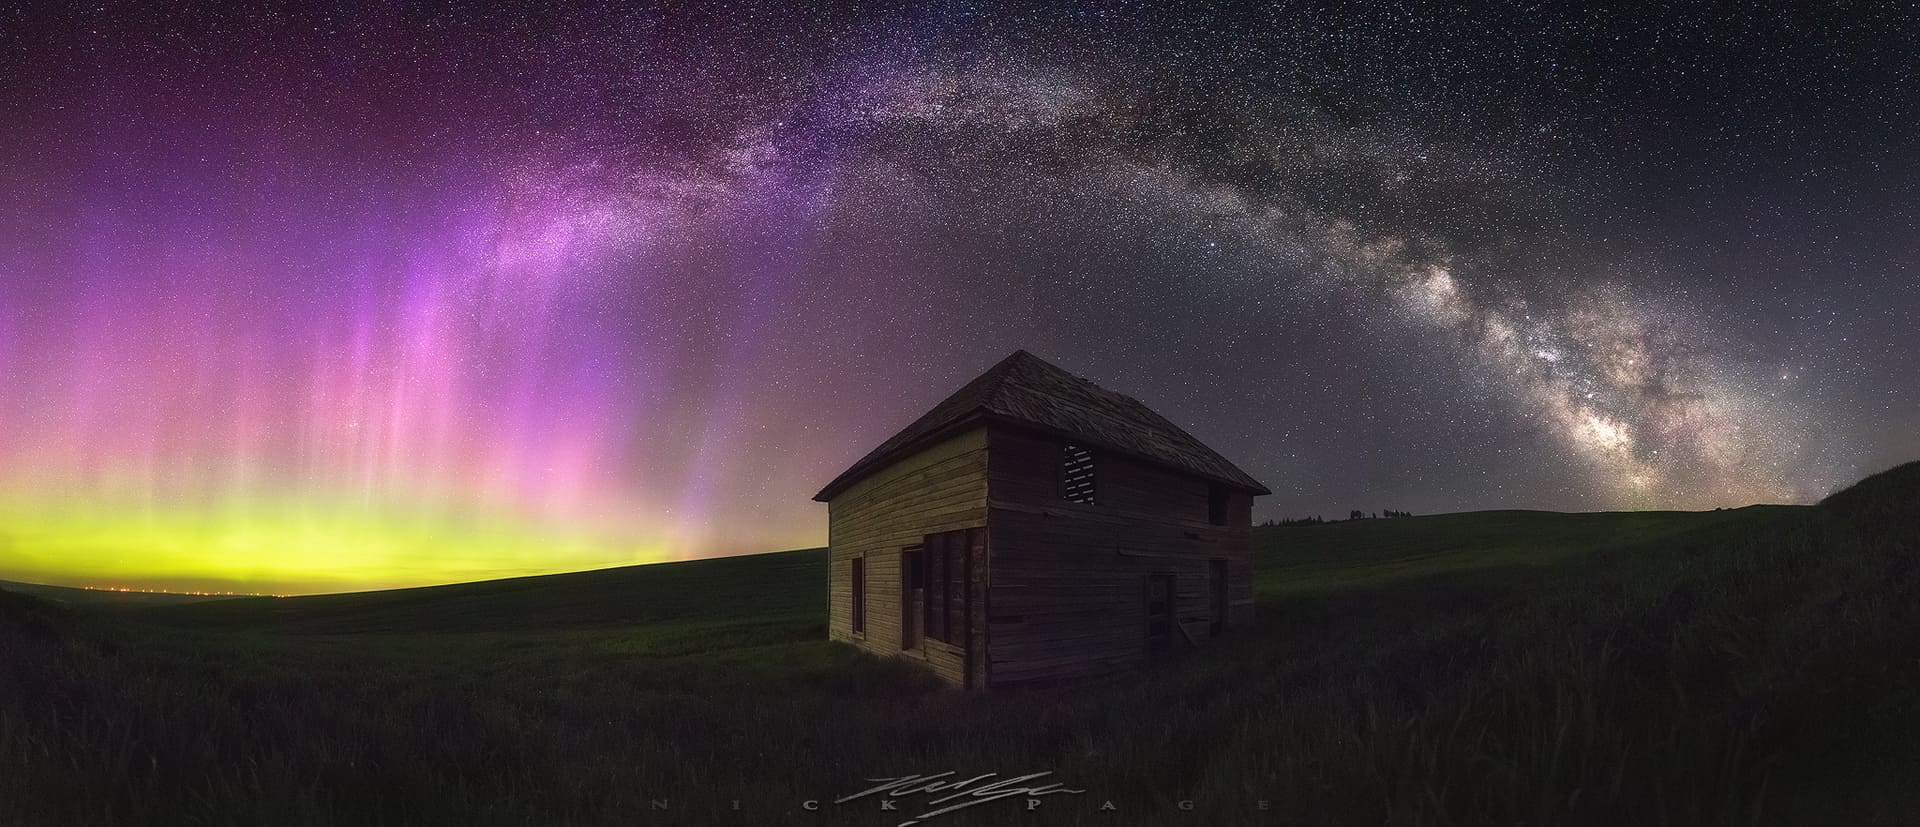 Best Aurora images In the USA